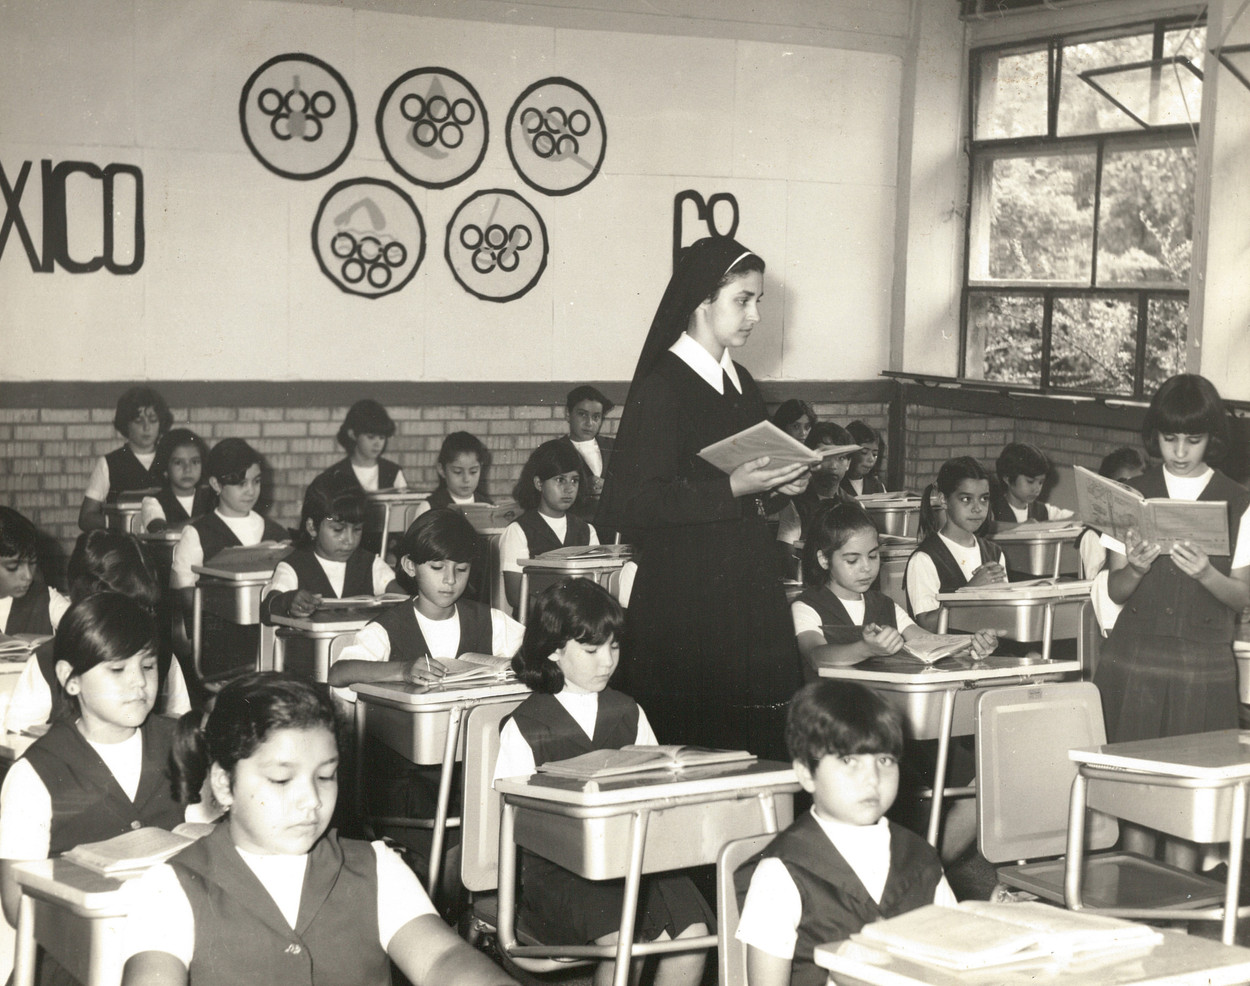 Sr. María Gabriela Virgen (1894–1983) believed in the power of teachers. As a young teacher in the 1920s, she struggled to educate her students in spite of the Mexican government's intolerance of religious learning. She persisted and co-founded the Instituto Hispano Inglés in San Luis Potosí in 1937 and became director of schools of the Incarnate Word Sisters in Chihuahua, Monterrey, and Mexico City. She believed passionately that teachers should be well educated and founded the teachers college at the Instituto Miguel Ángel in 1950.